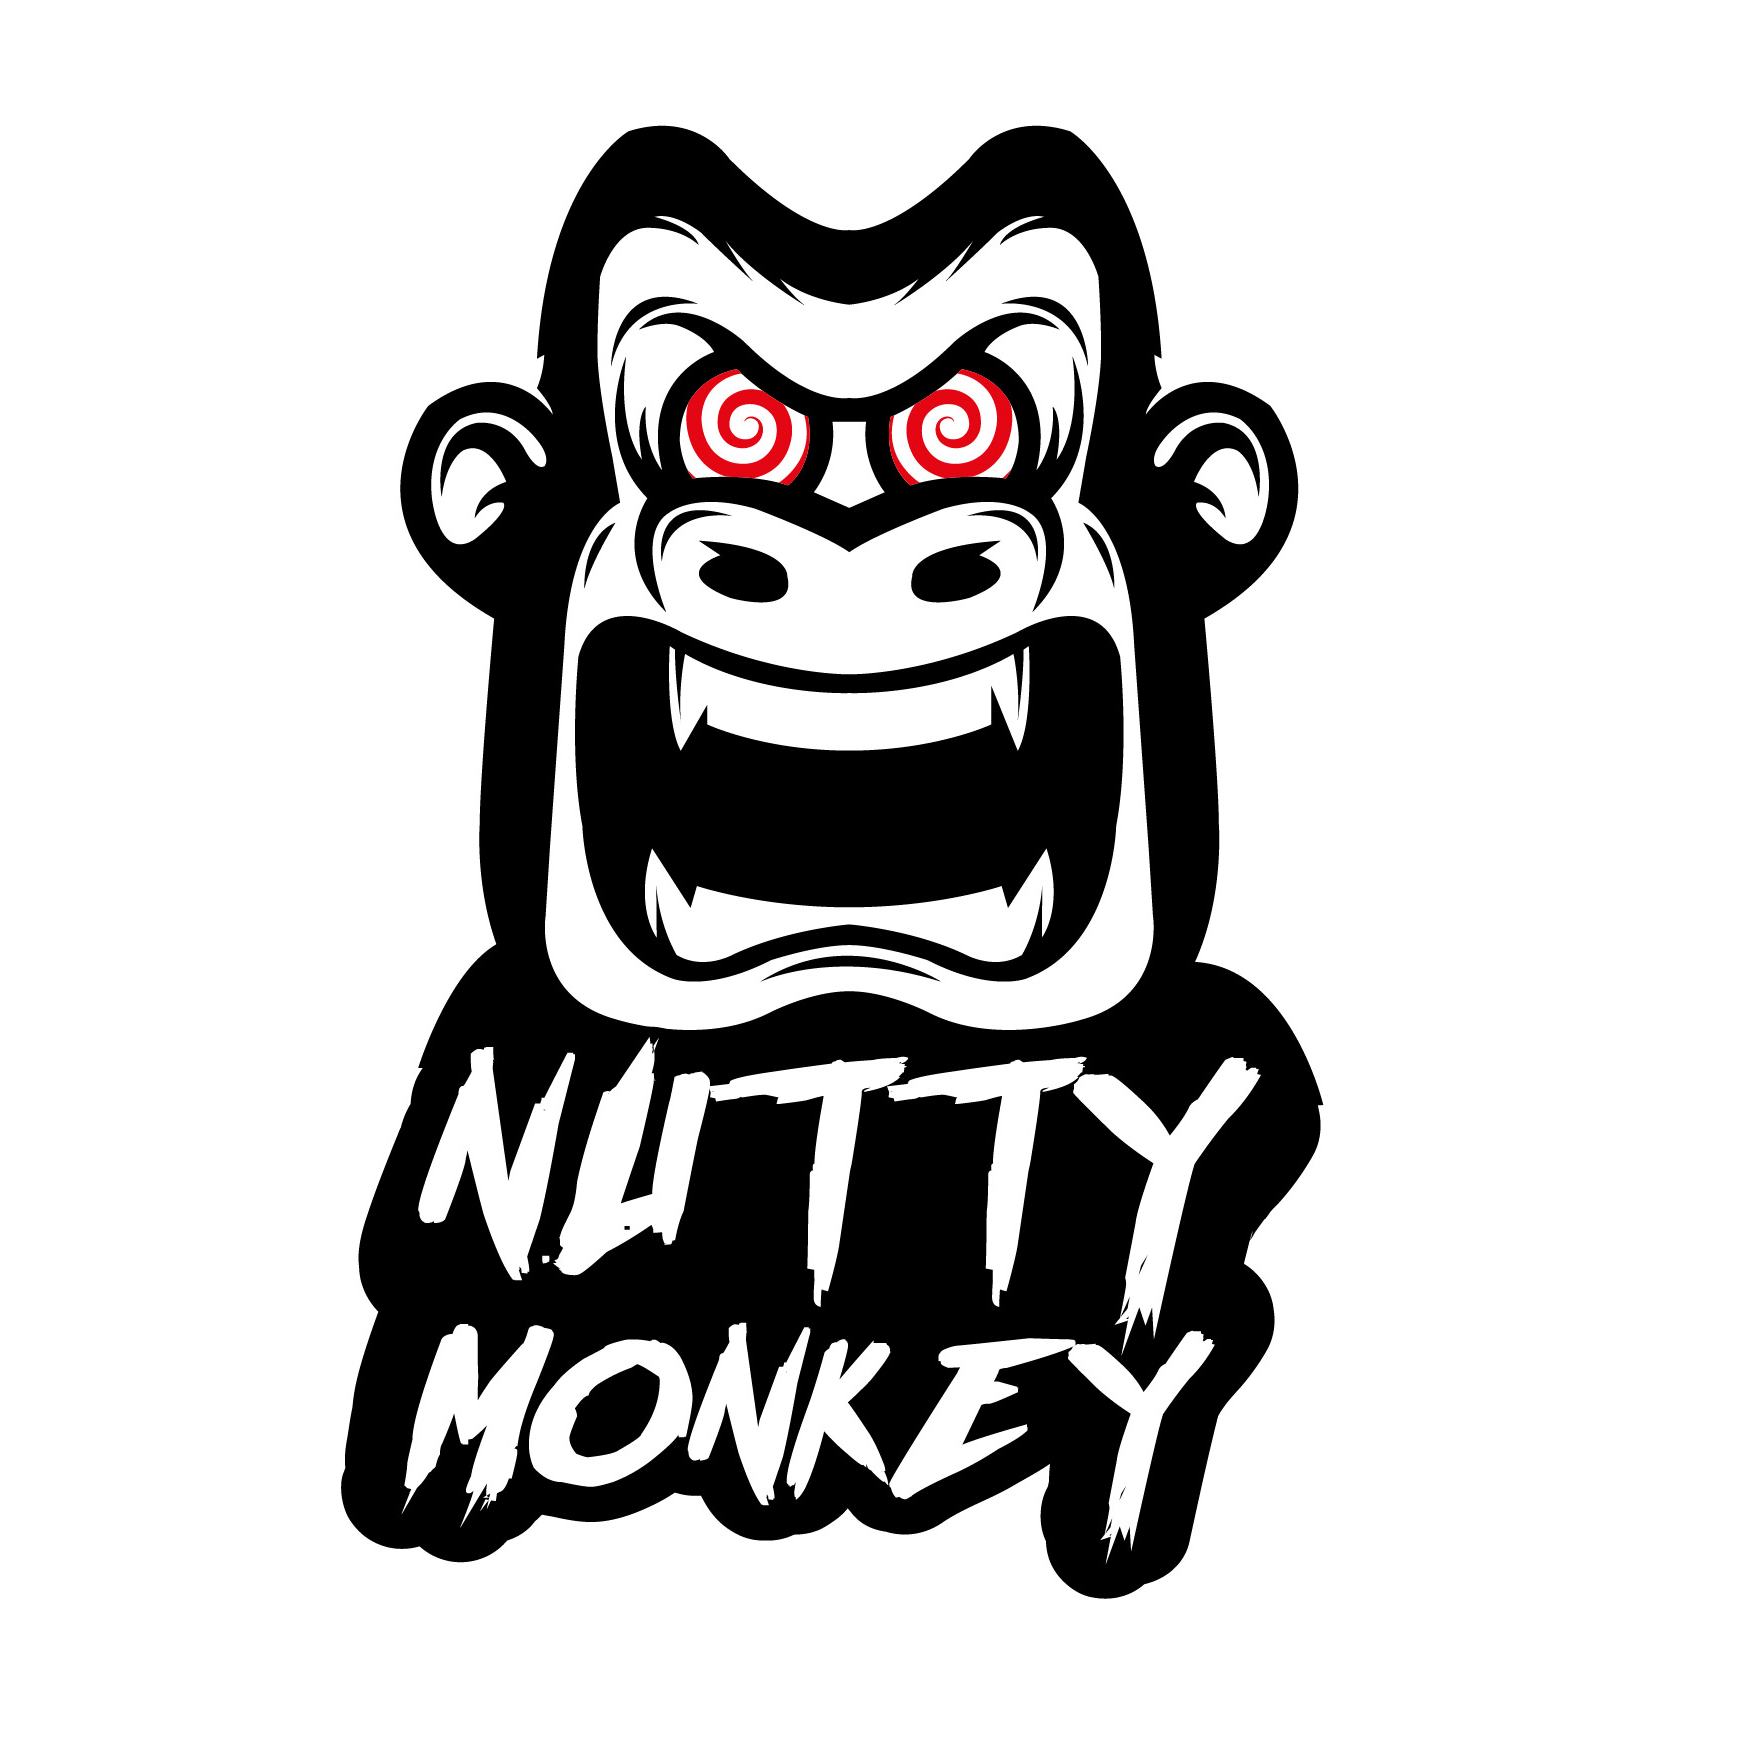 Nutty Monkey Radio